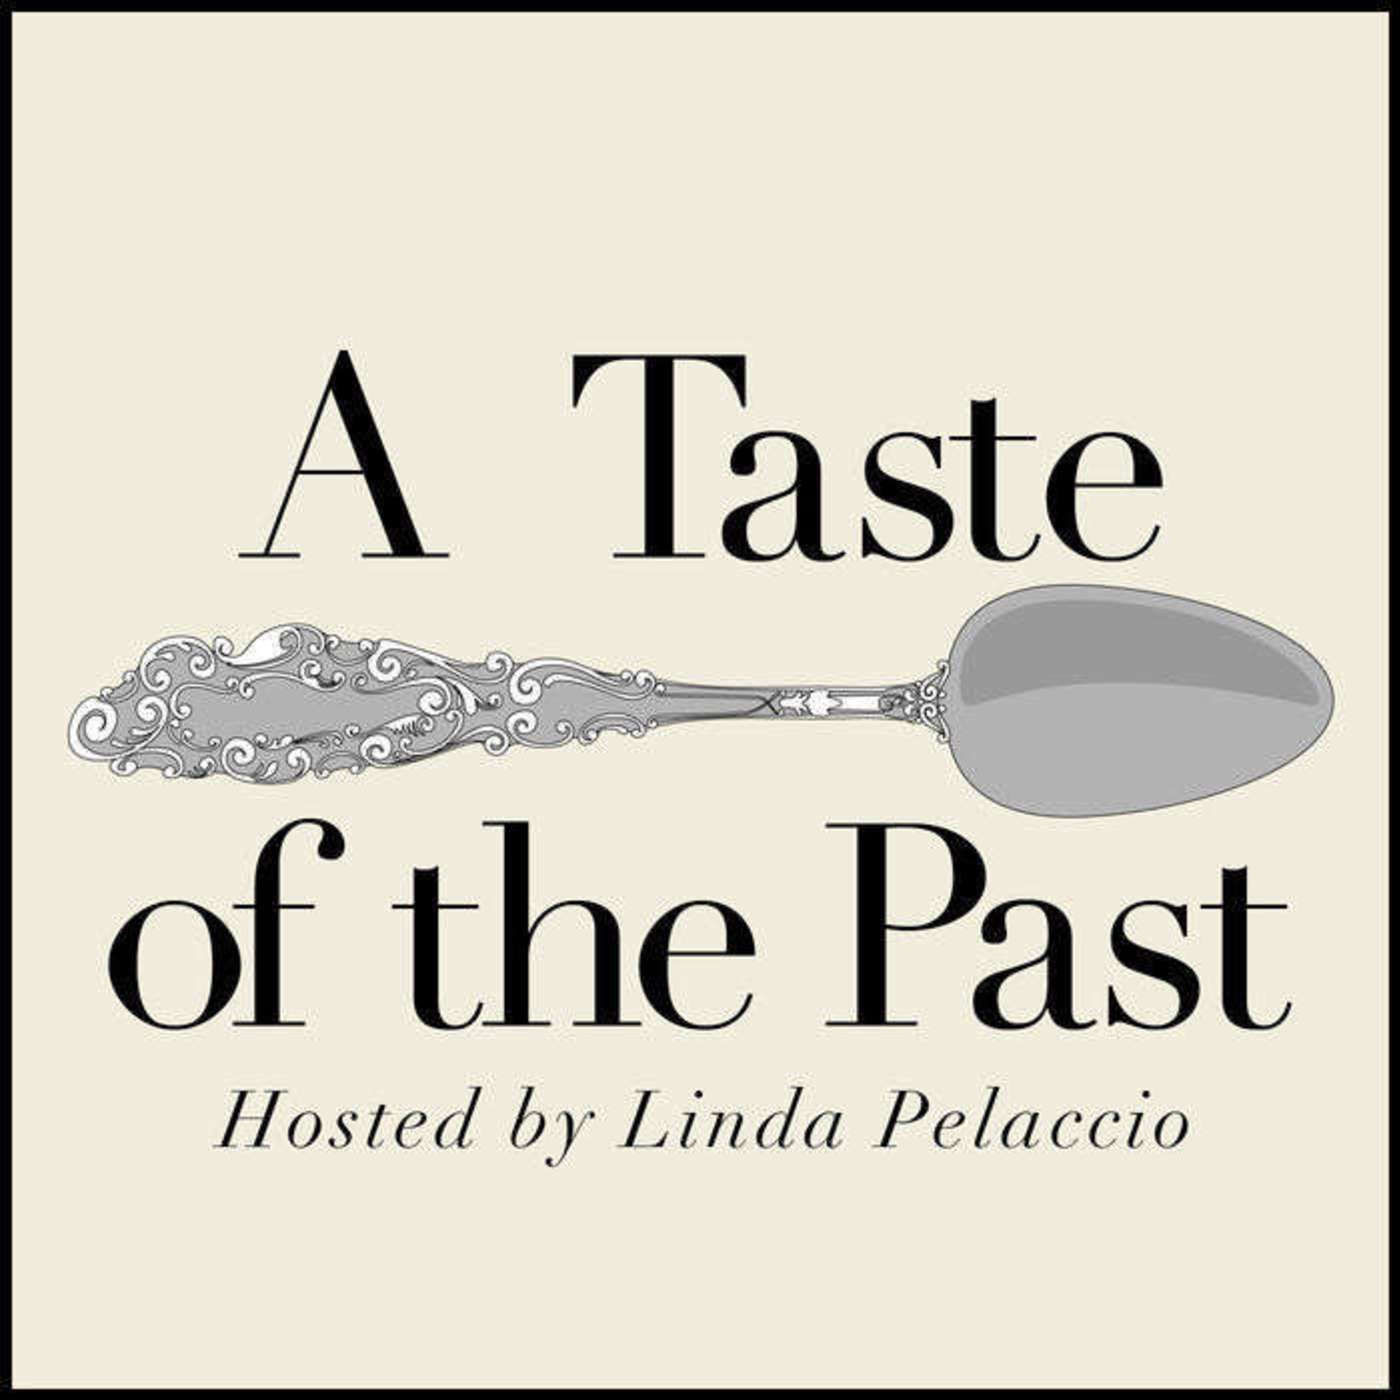 Episode 153: Invention of the American Meal